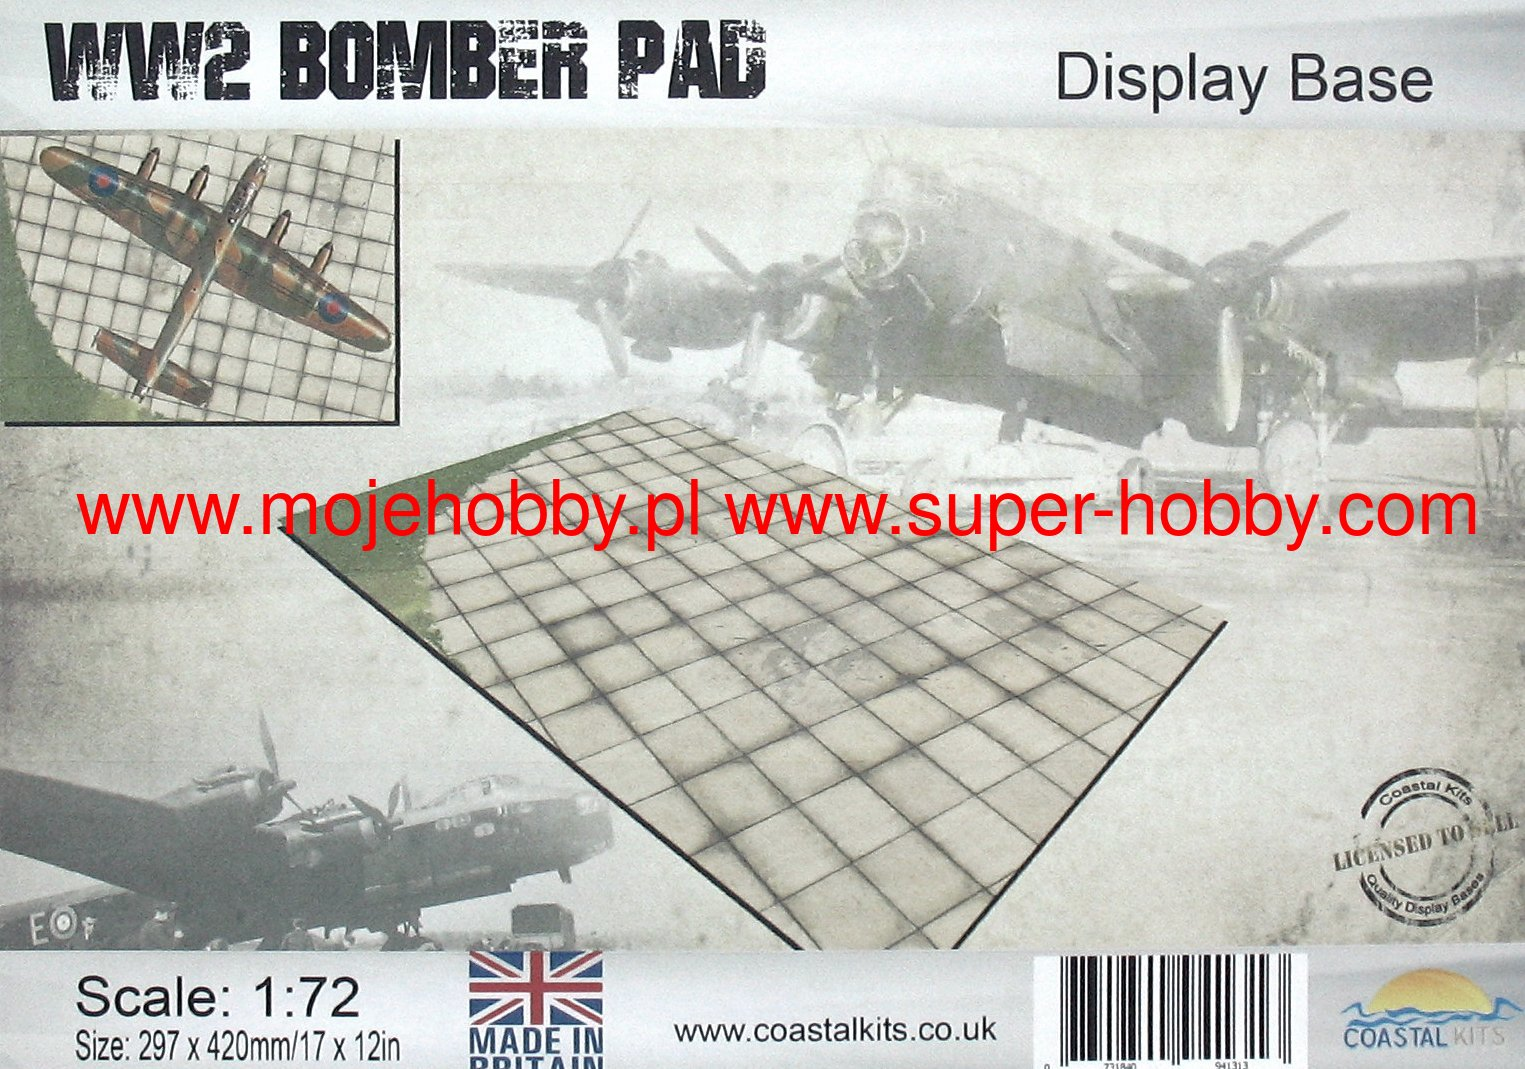 Coastal Kits 1:72 Scale Bomber Pad Display Base